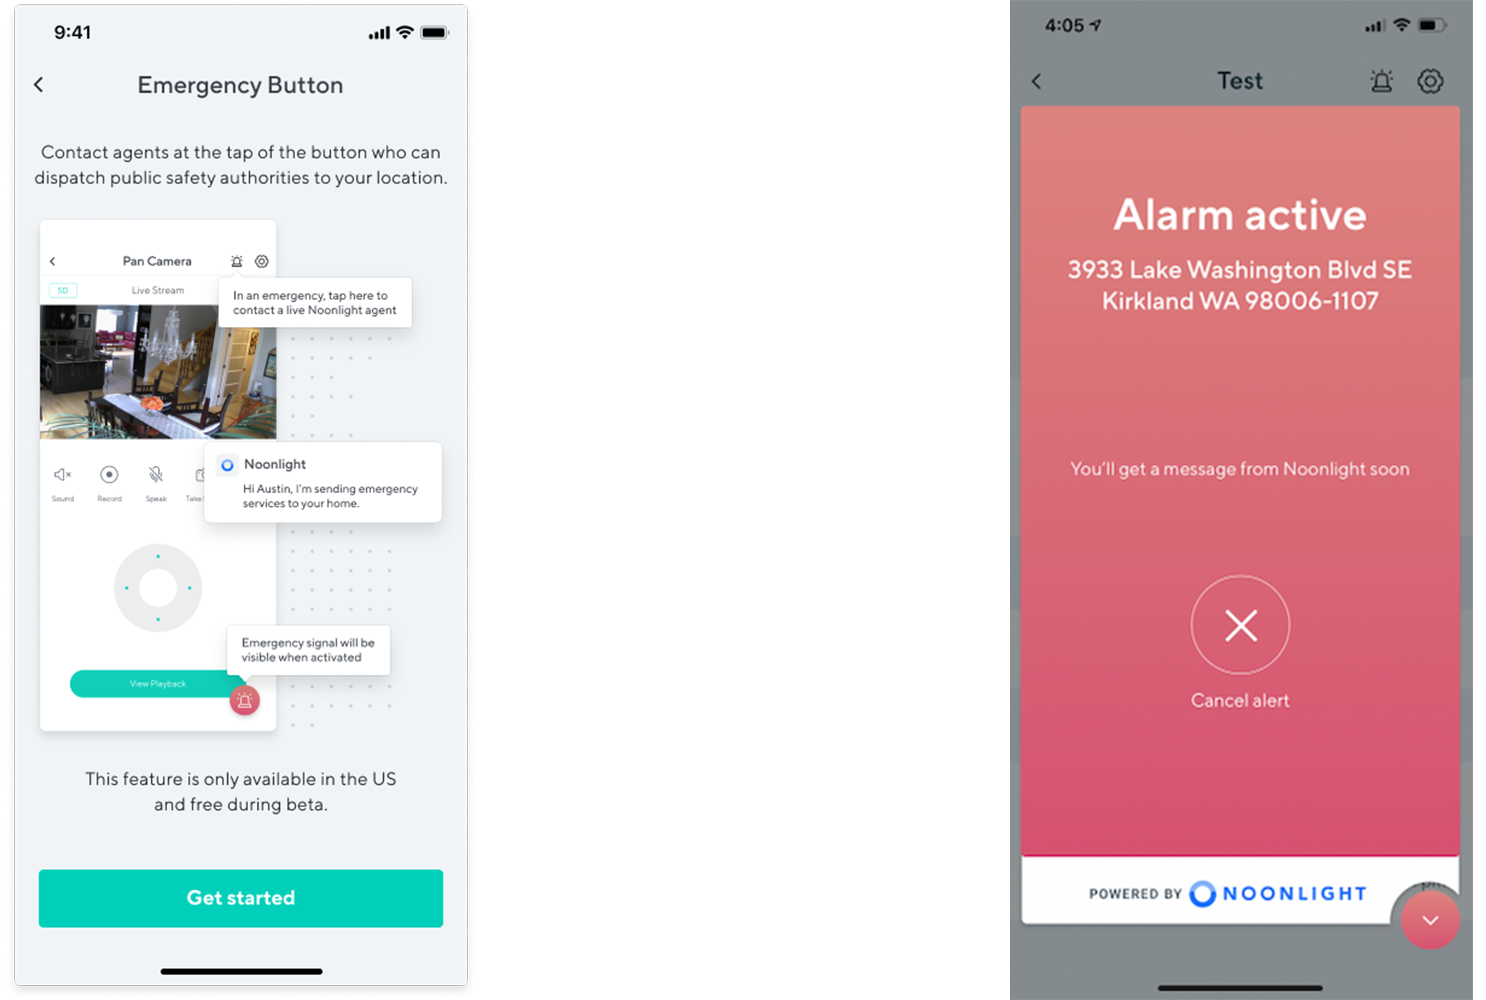 Wyze steps up its budget-focused home security game with Noonlight partnership